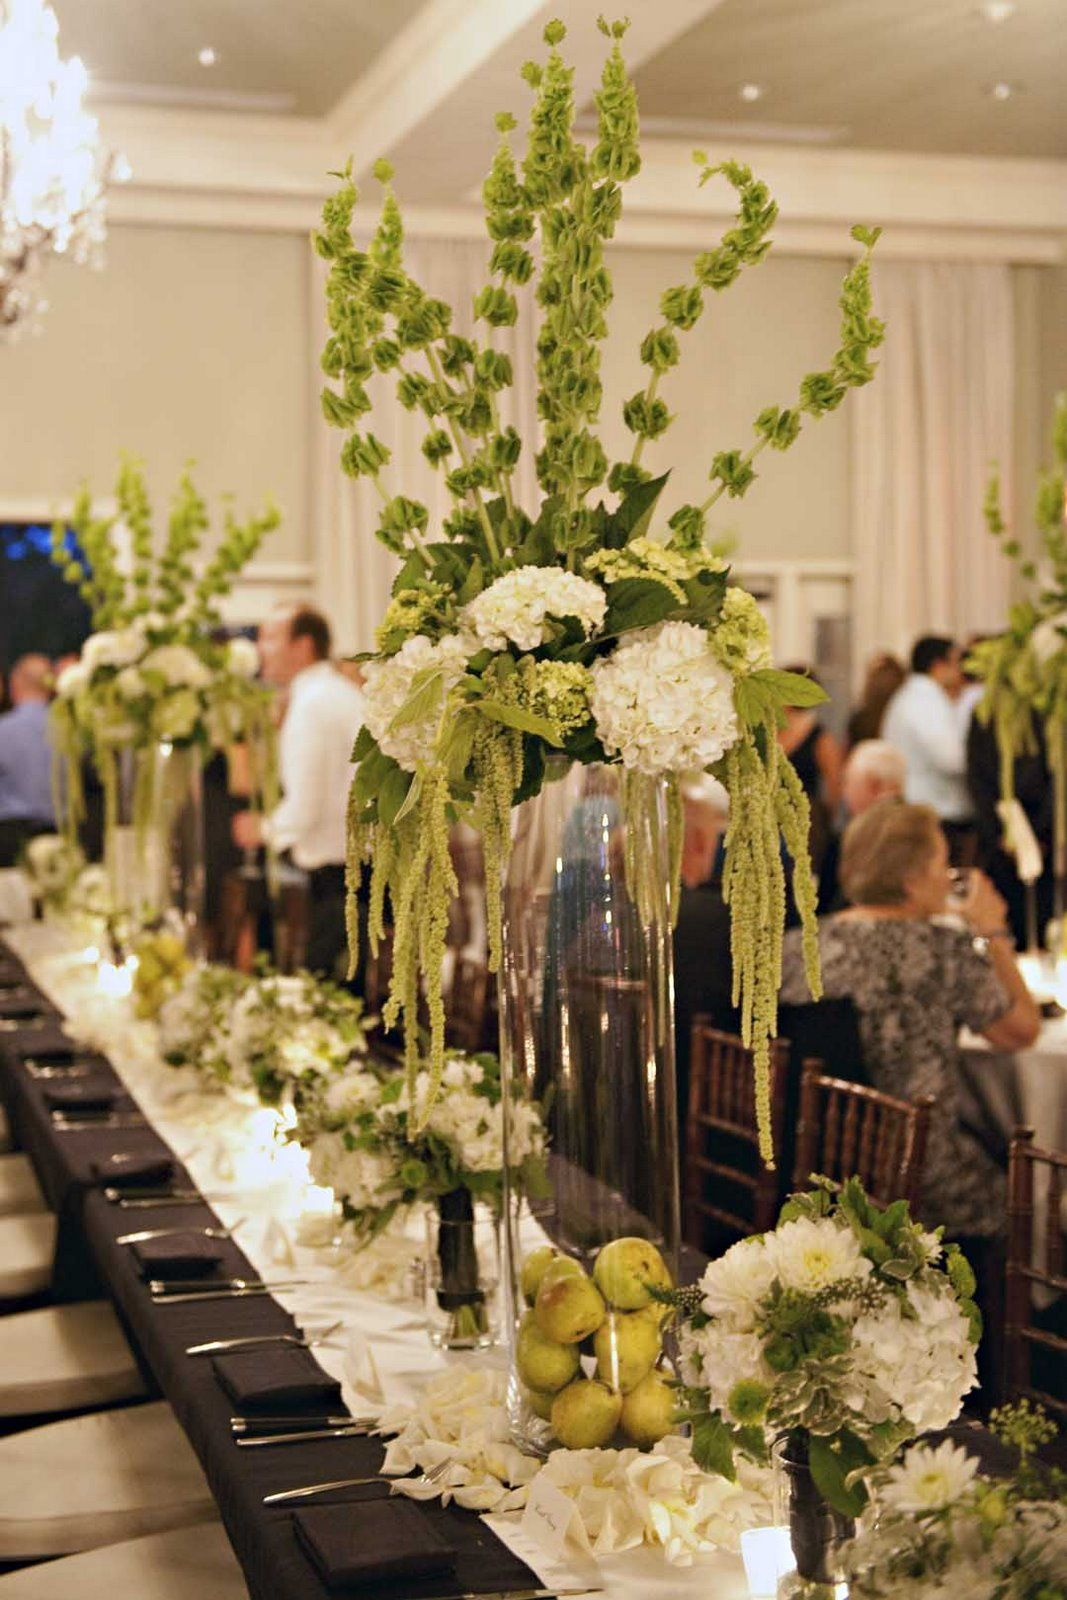 green and white arrangements of hydrangea, bells of